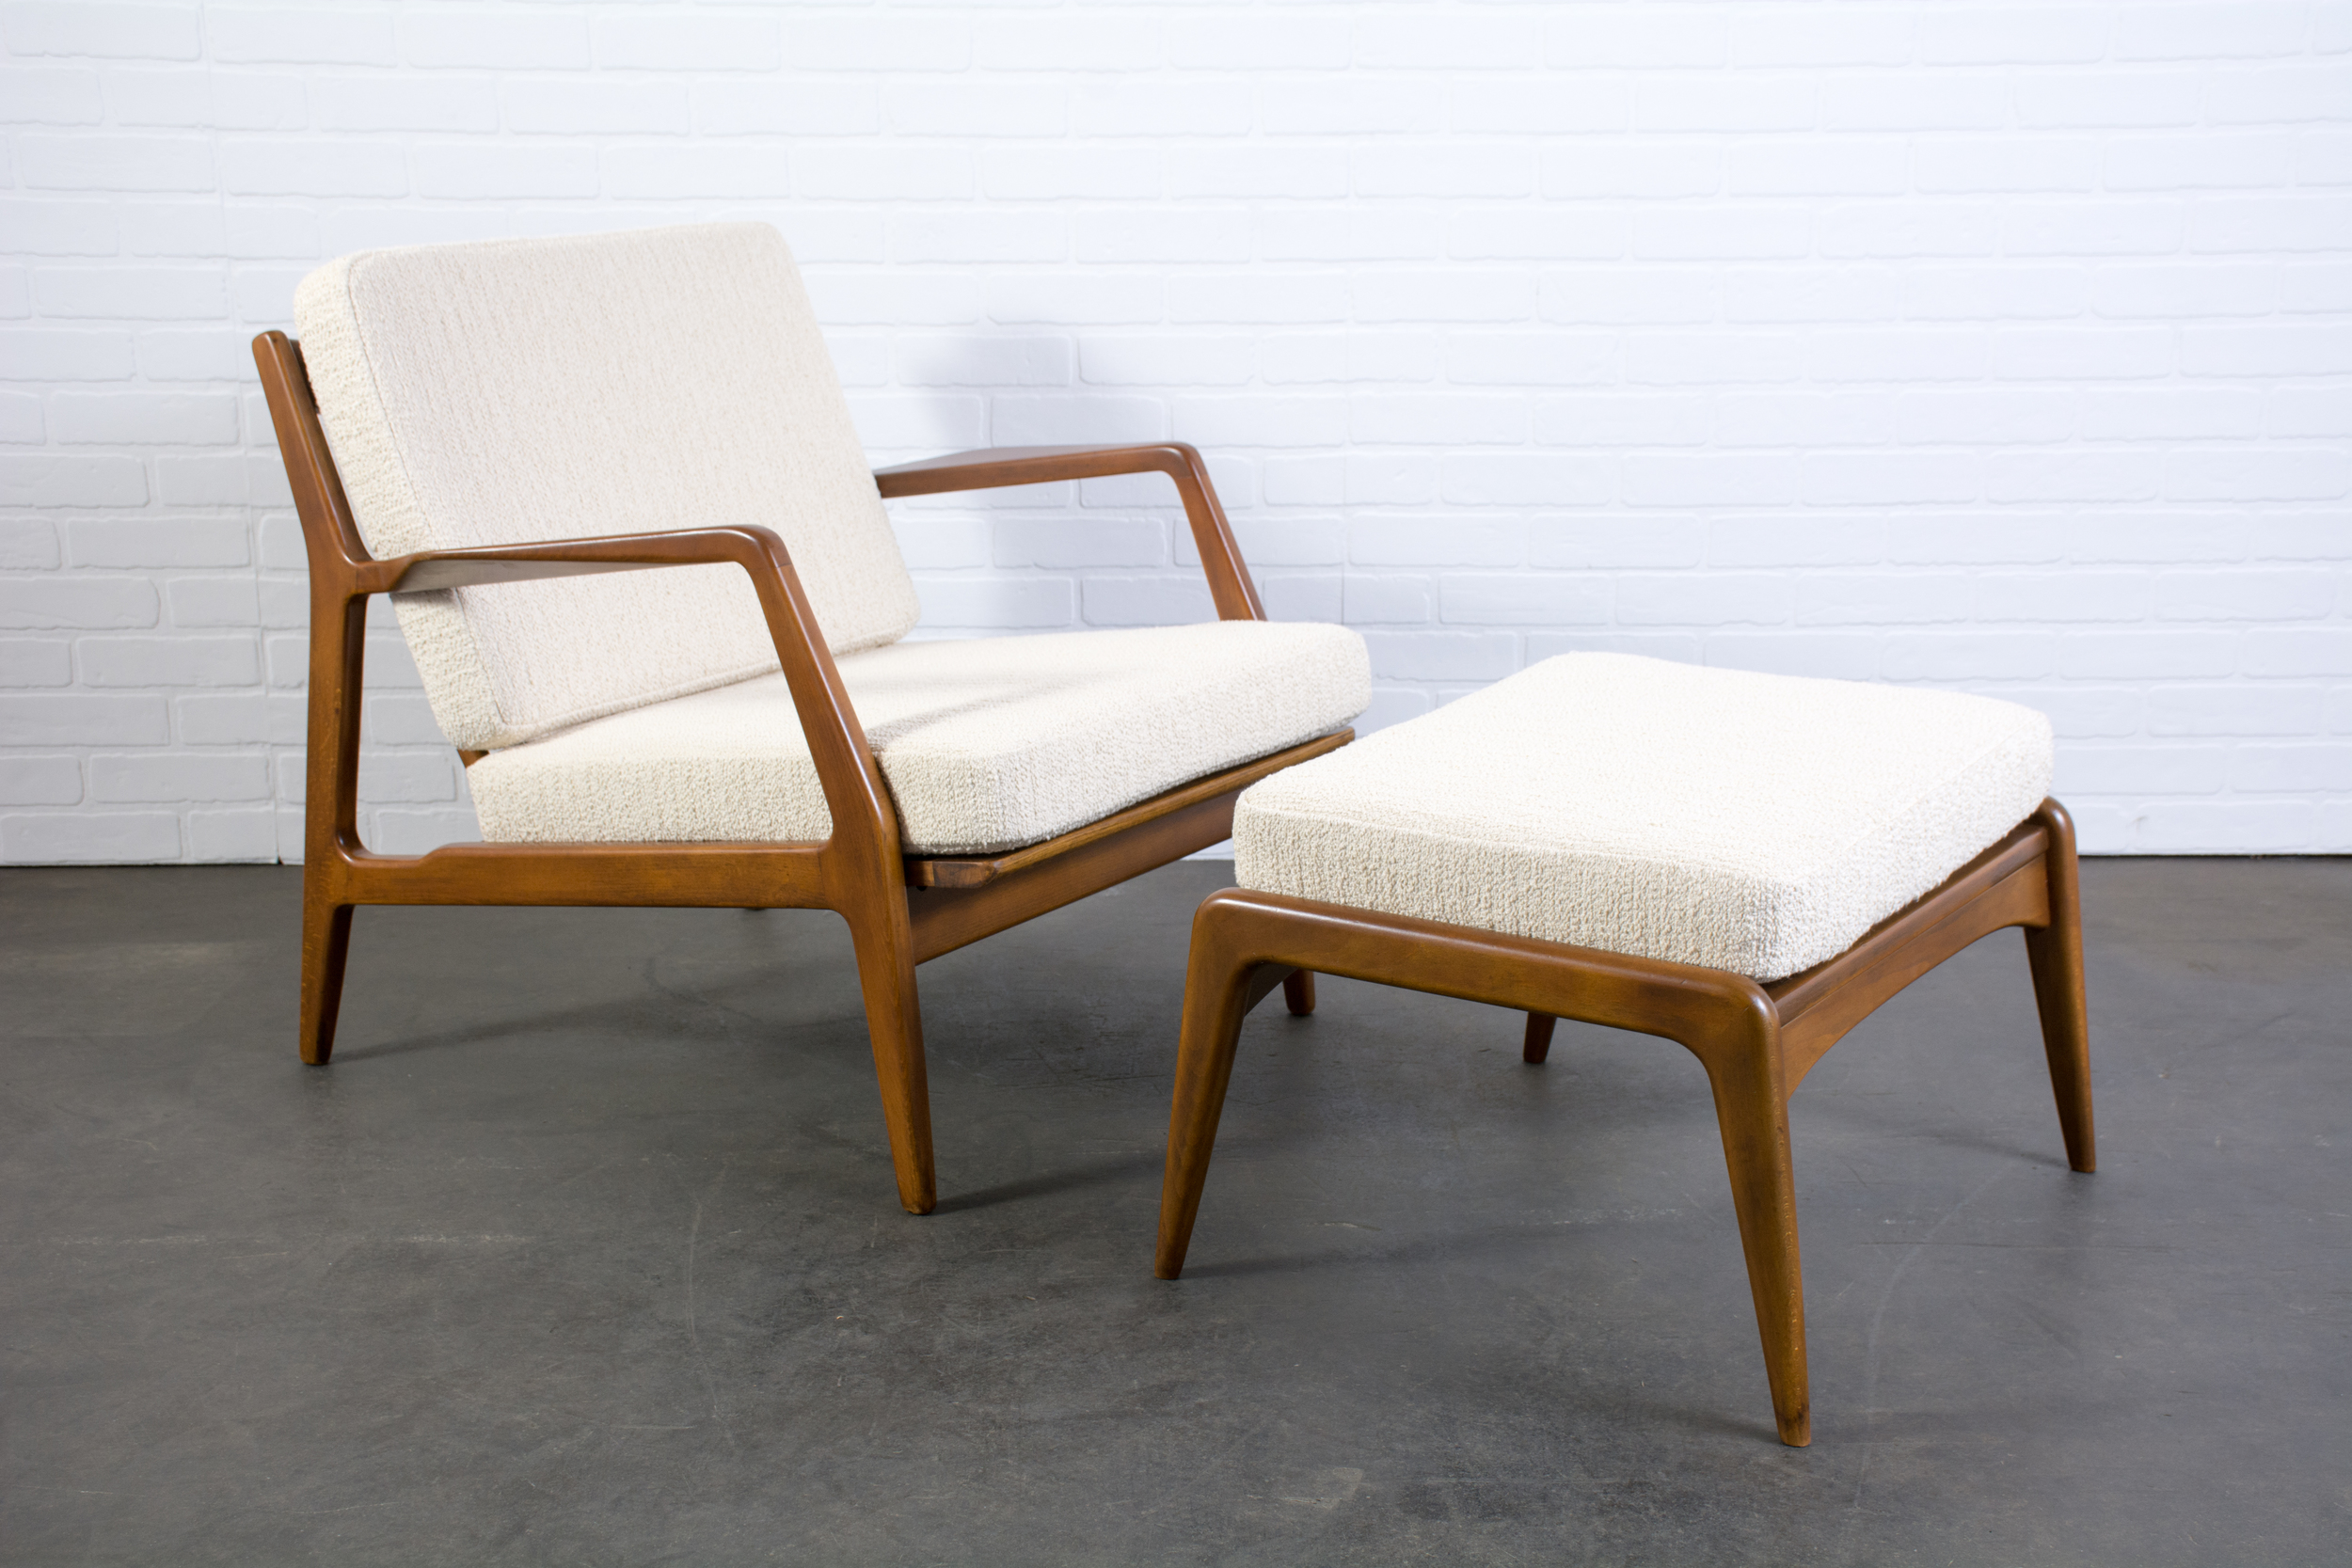 Danish Modern Lounge Chair and Ottoman by Ib Kofod Larsen